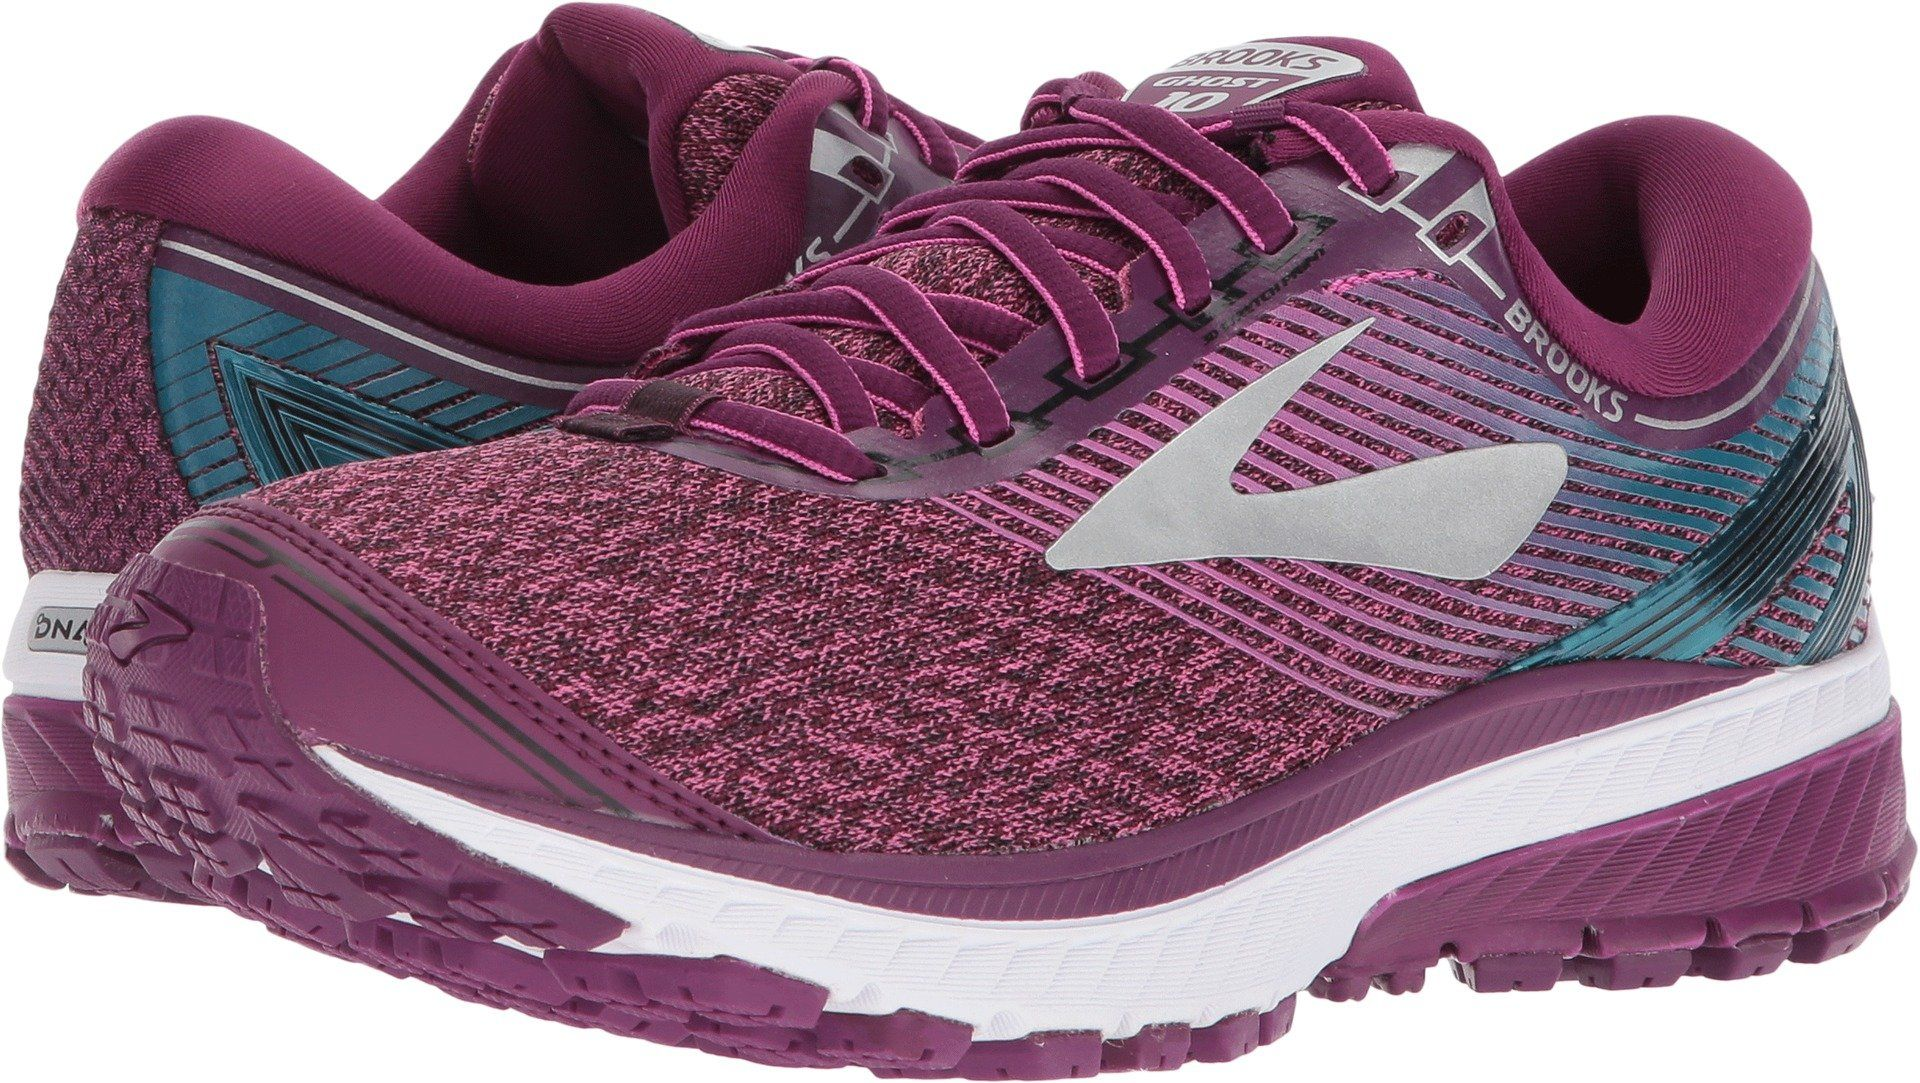 5d5e206e2495c Brooks Womens Ghost 10 Purple Pink Teal 7 B US -- You can get additional  details at the image link. (This is an affiliate link)